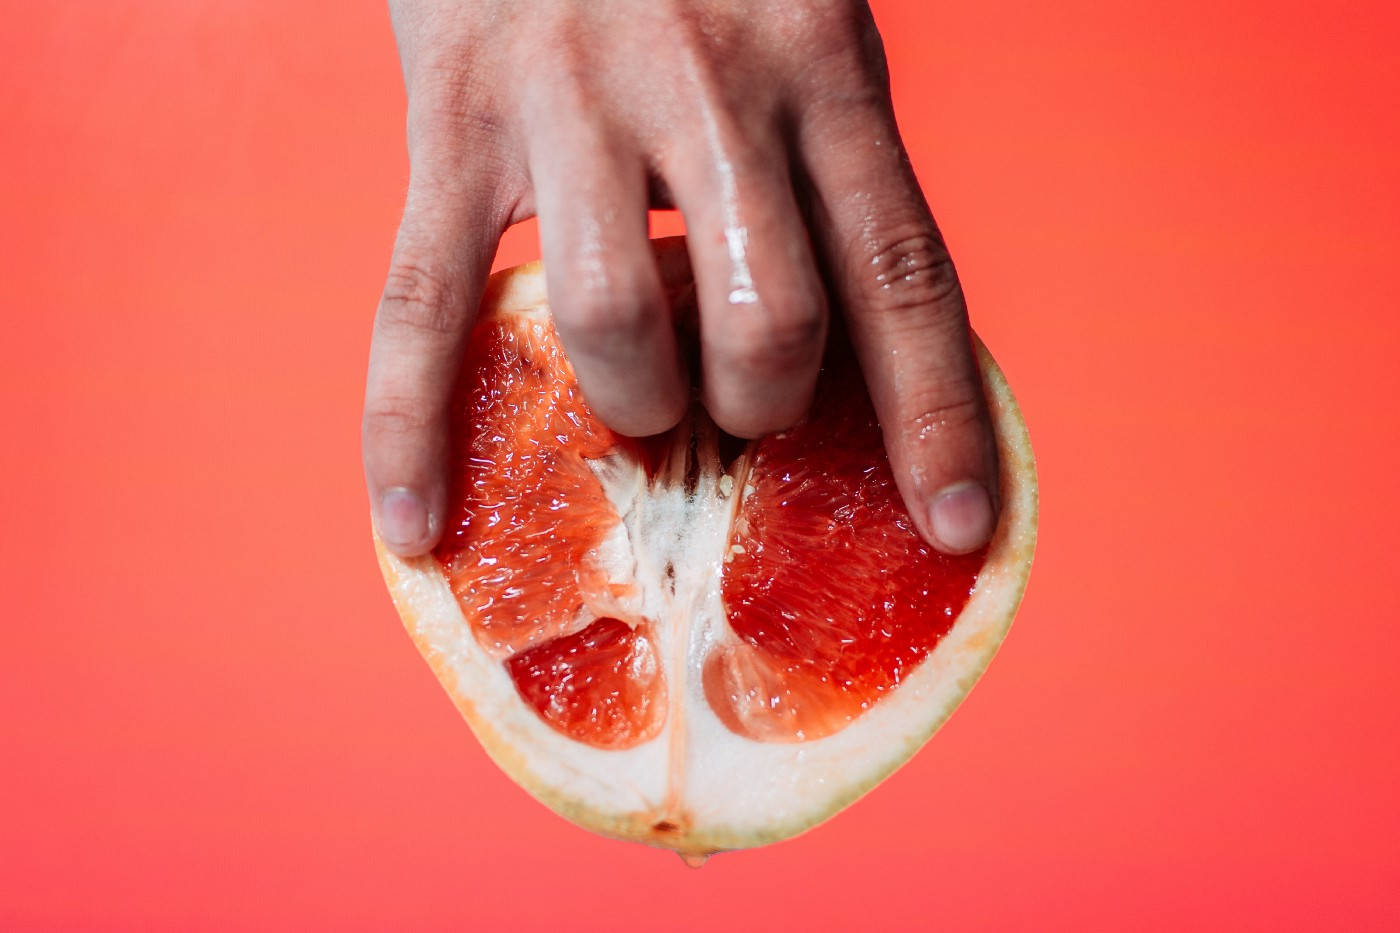 Half grapefruit fingered to support a story about sex and virality